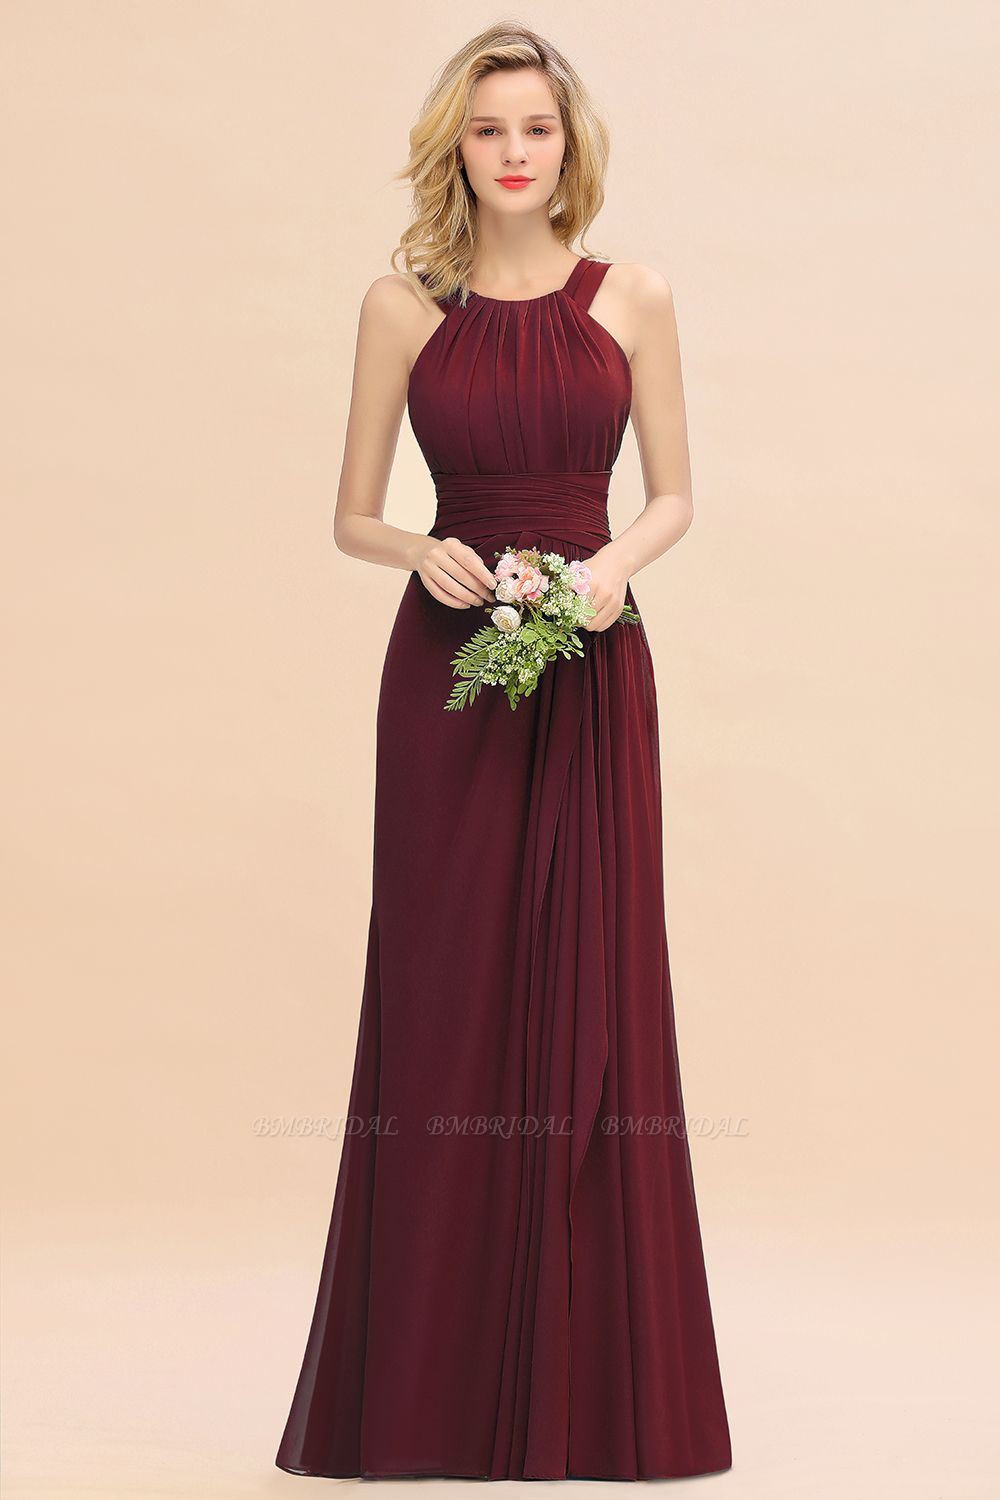 Burgundy Bridesmaid Dresses Are Perfect for A Fall Wedding In 2019